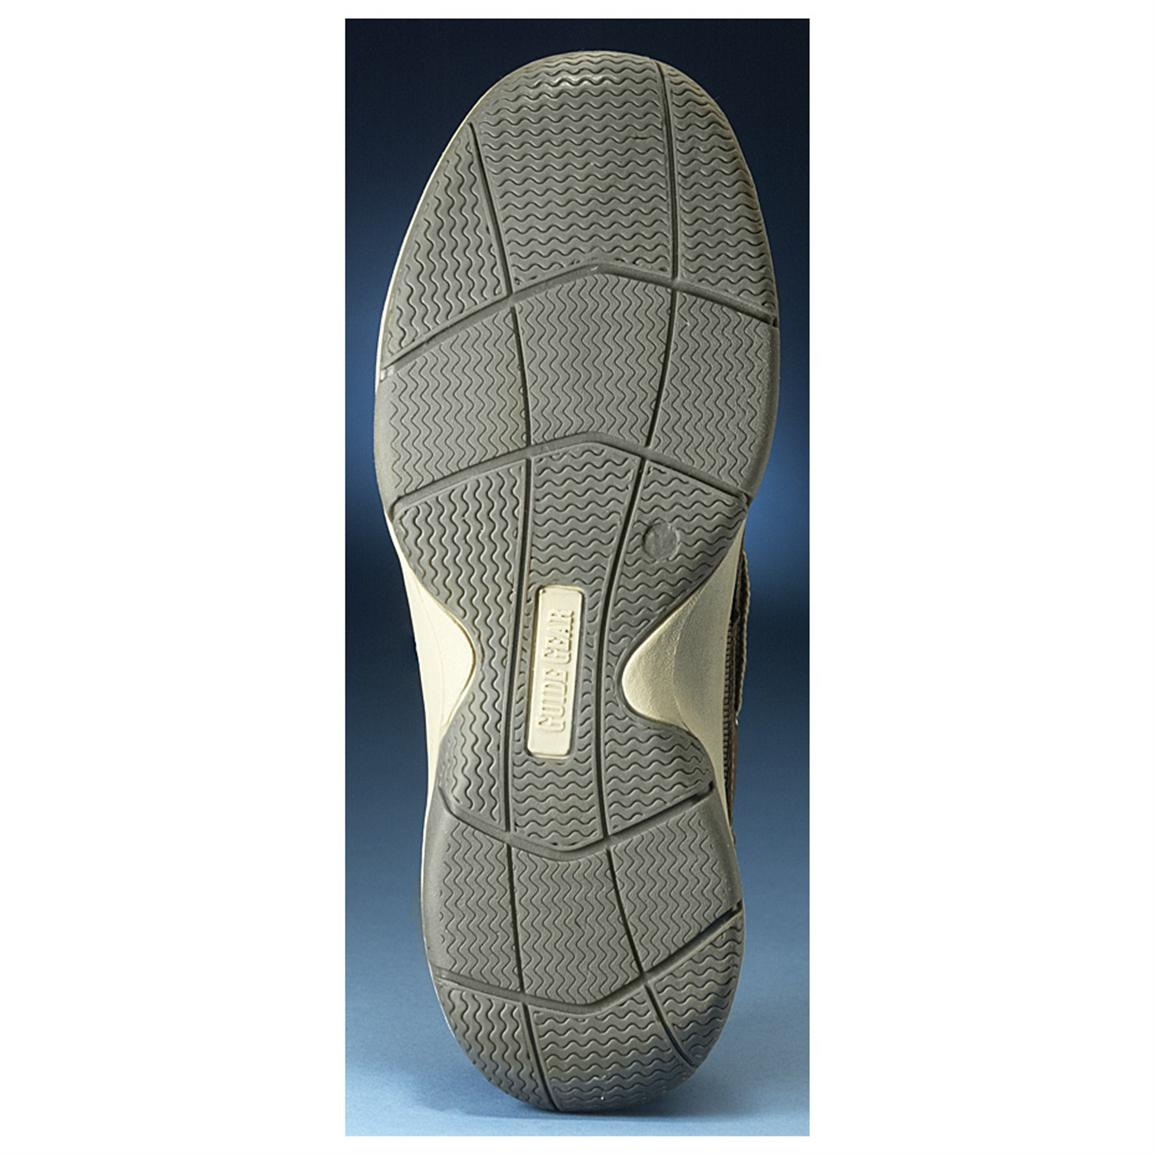 Rubber outsole for high-traction grip on wet surfaces